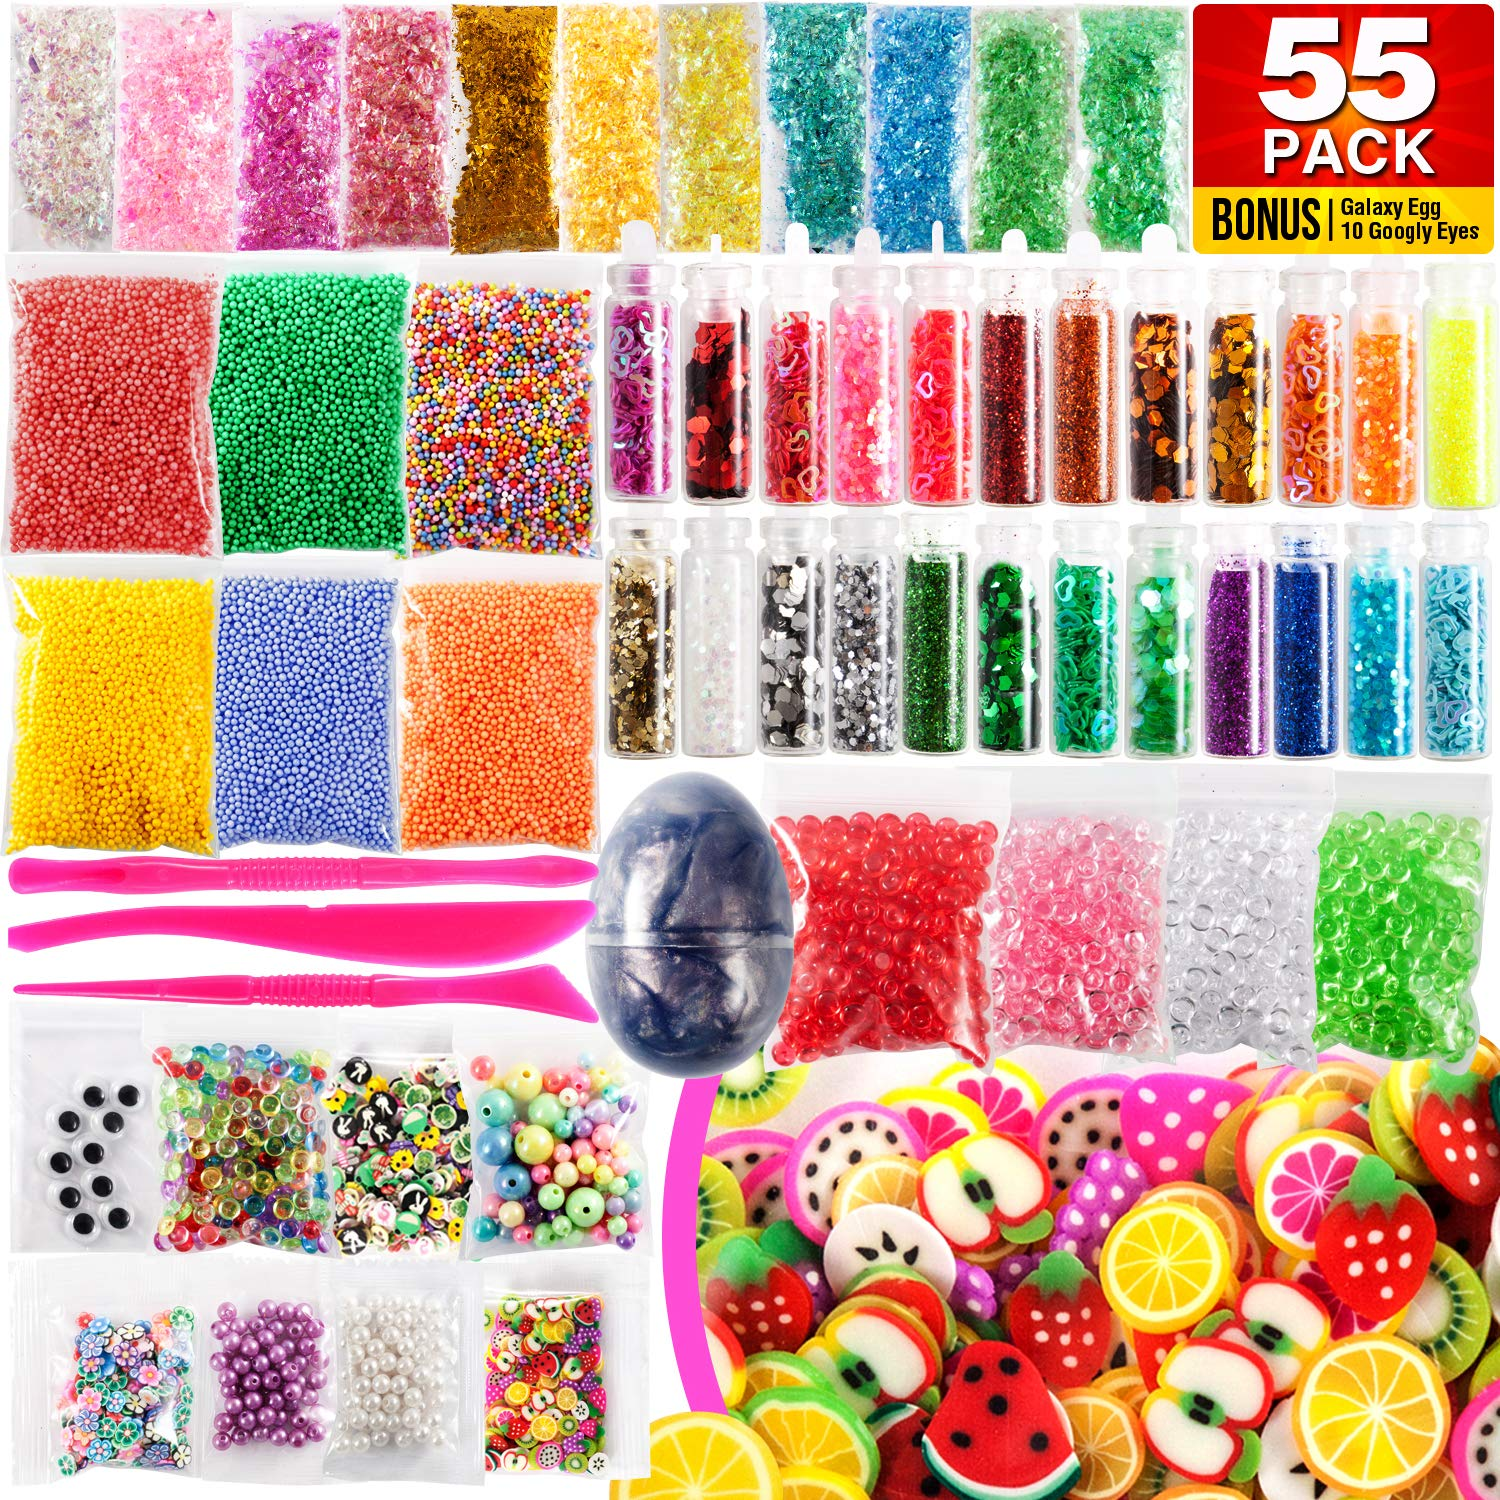 Slime Supplies Kit 55 Pack – Galaxy Egg, Googly Eyes, Glitter Shake Jars, Pearls, Wonderful Fruit Slices, Great Sugar Papers, Fantastic Fishbowl Beads, Foam Balls, Amazing Fun Tools YI 12514125